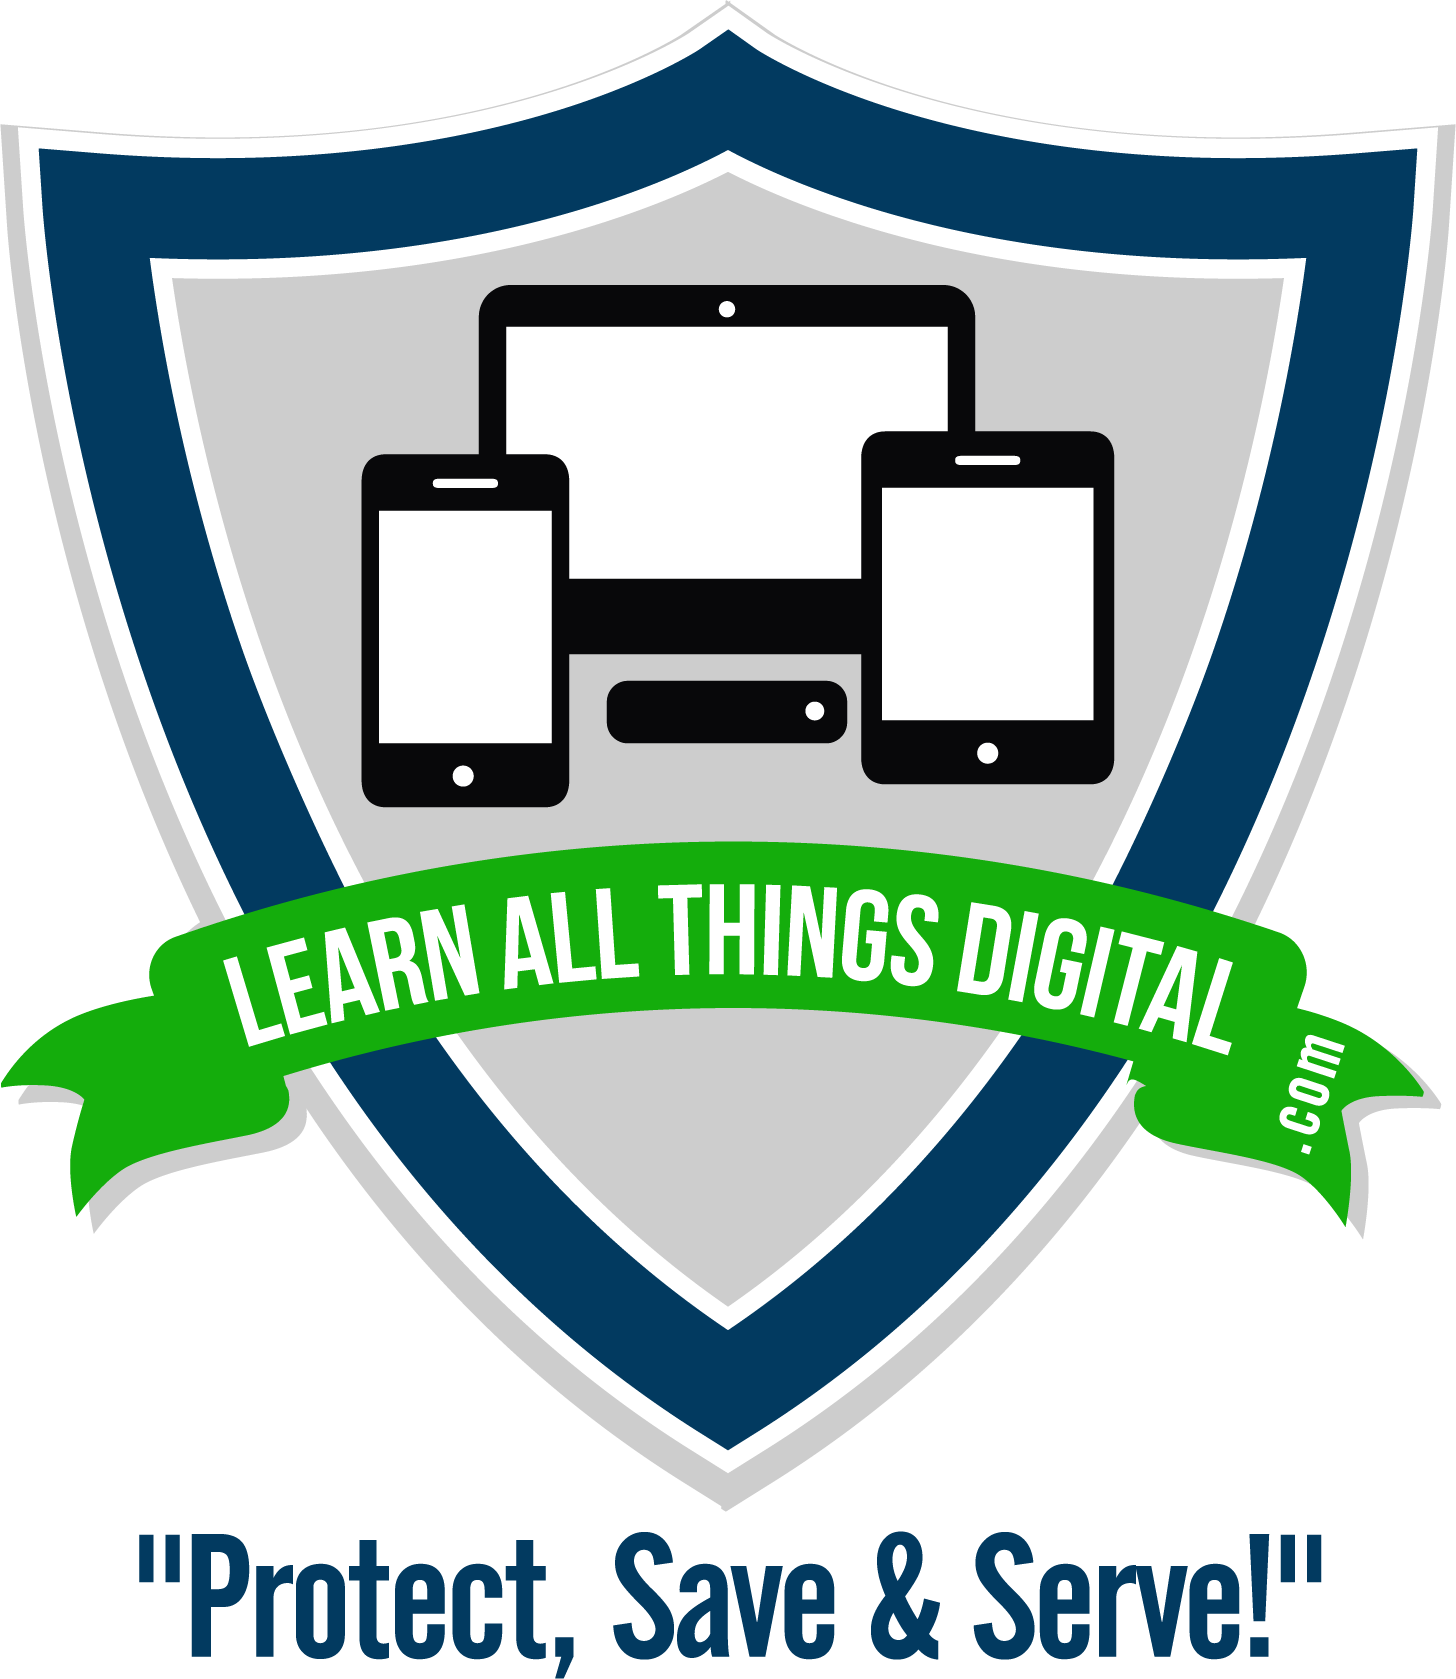 Learn All Things Digital